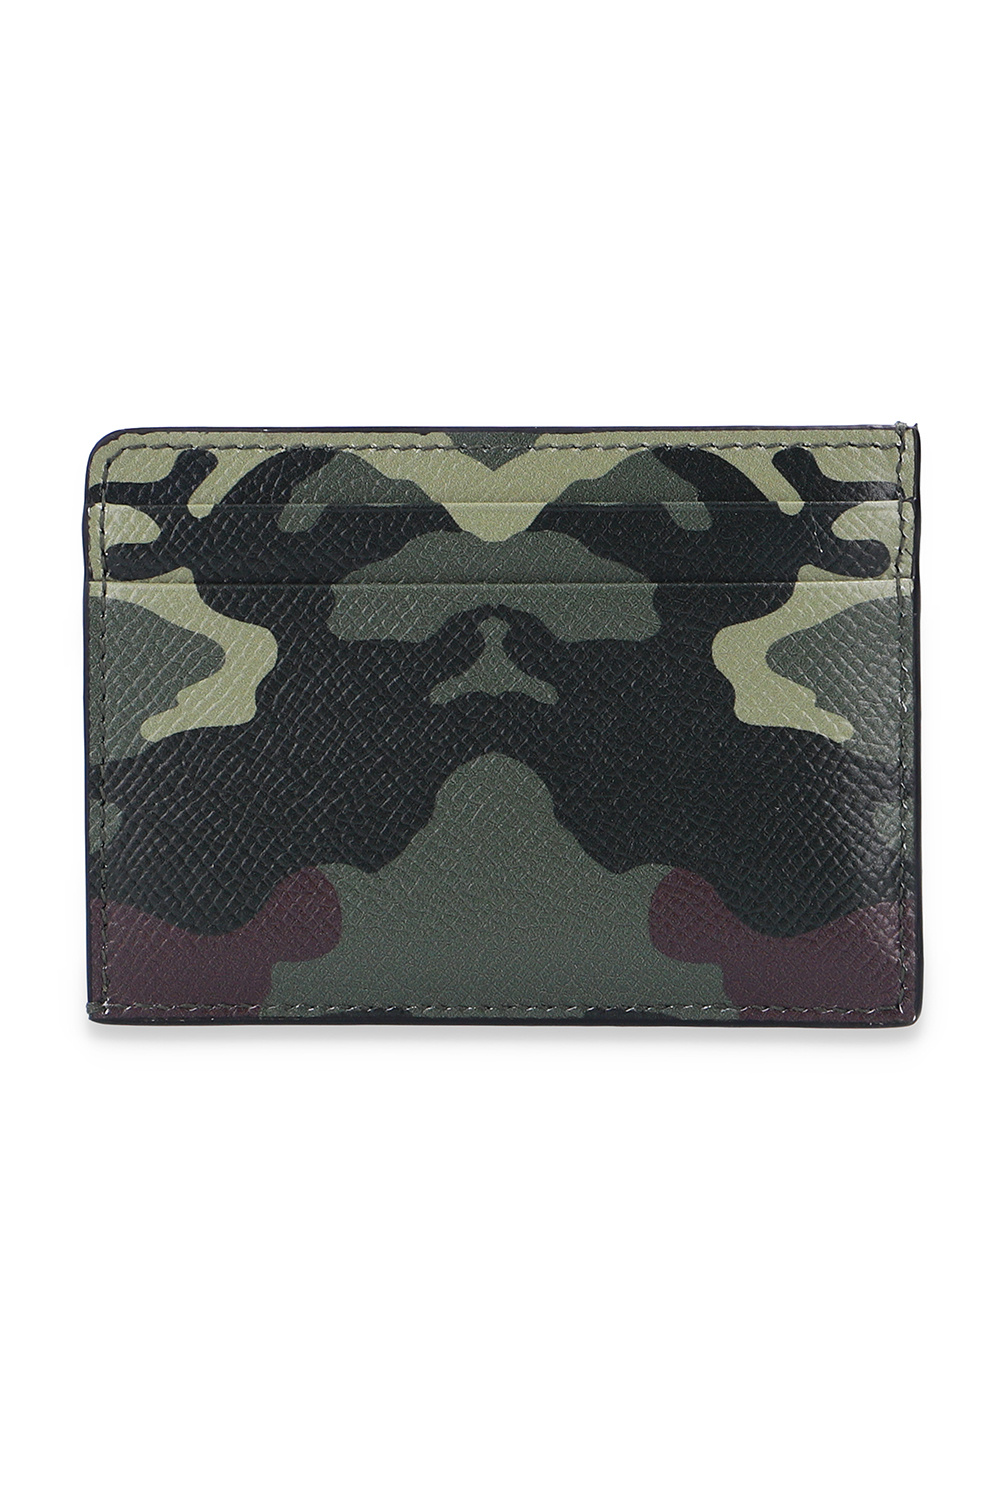 Burberry Card case with logo